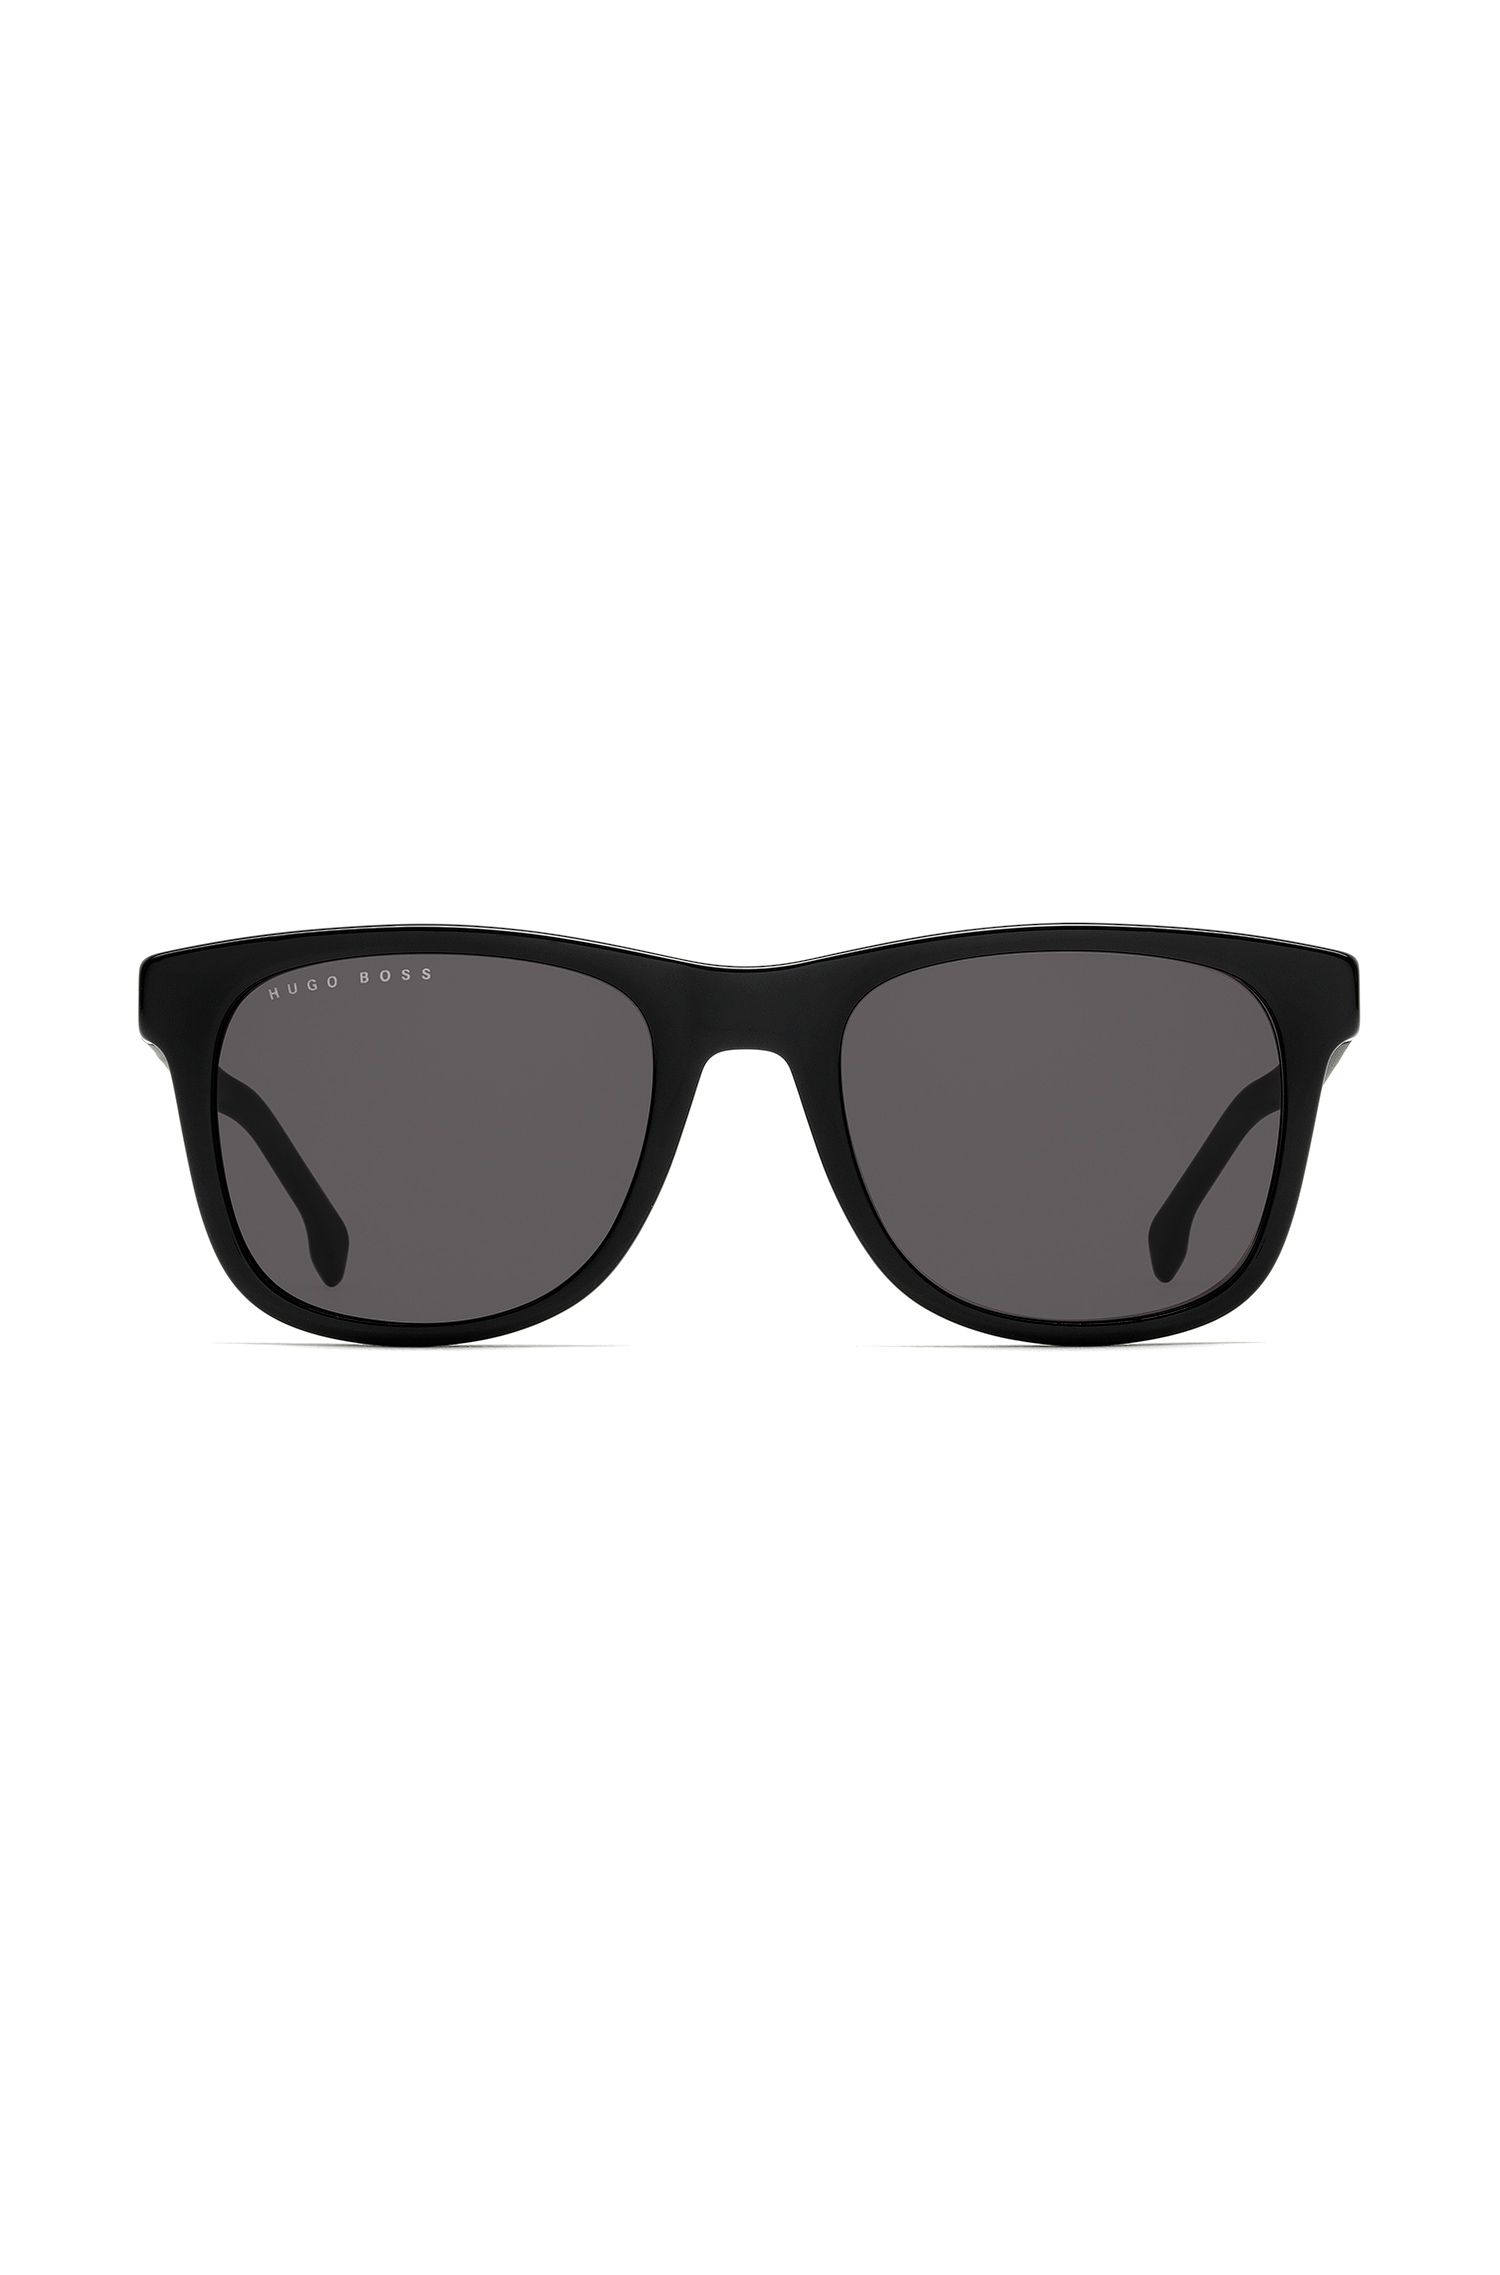 Square sunglasses in black acetate with micro-patterned temples, Assorted-Pre-Pack